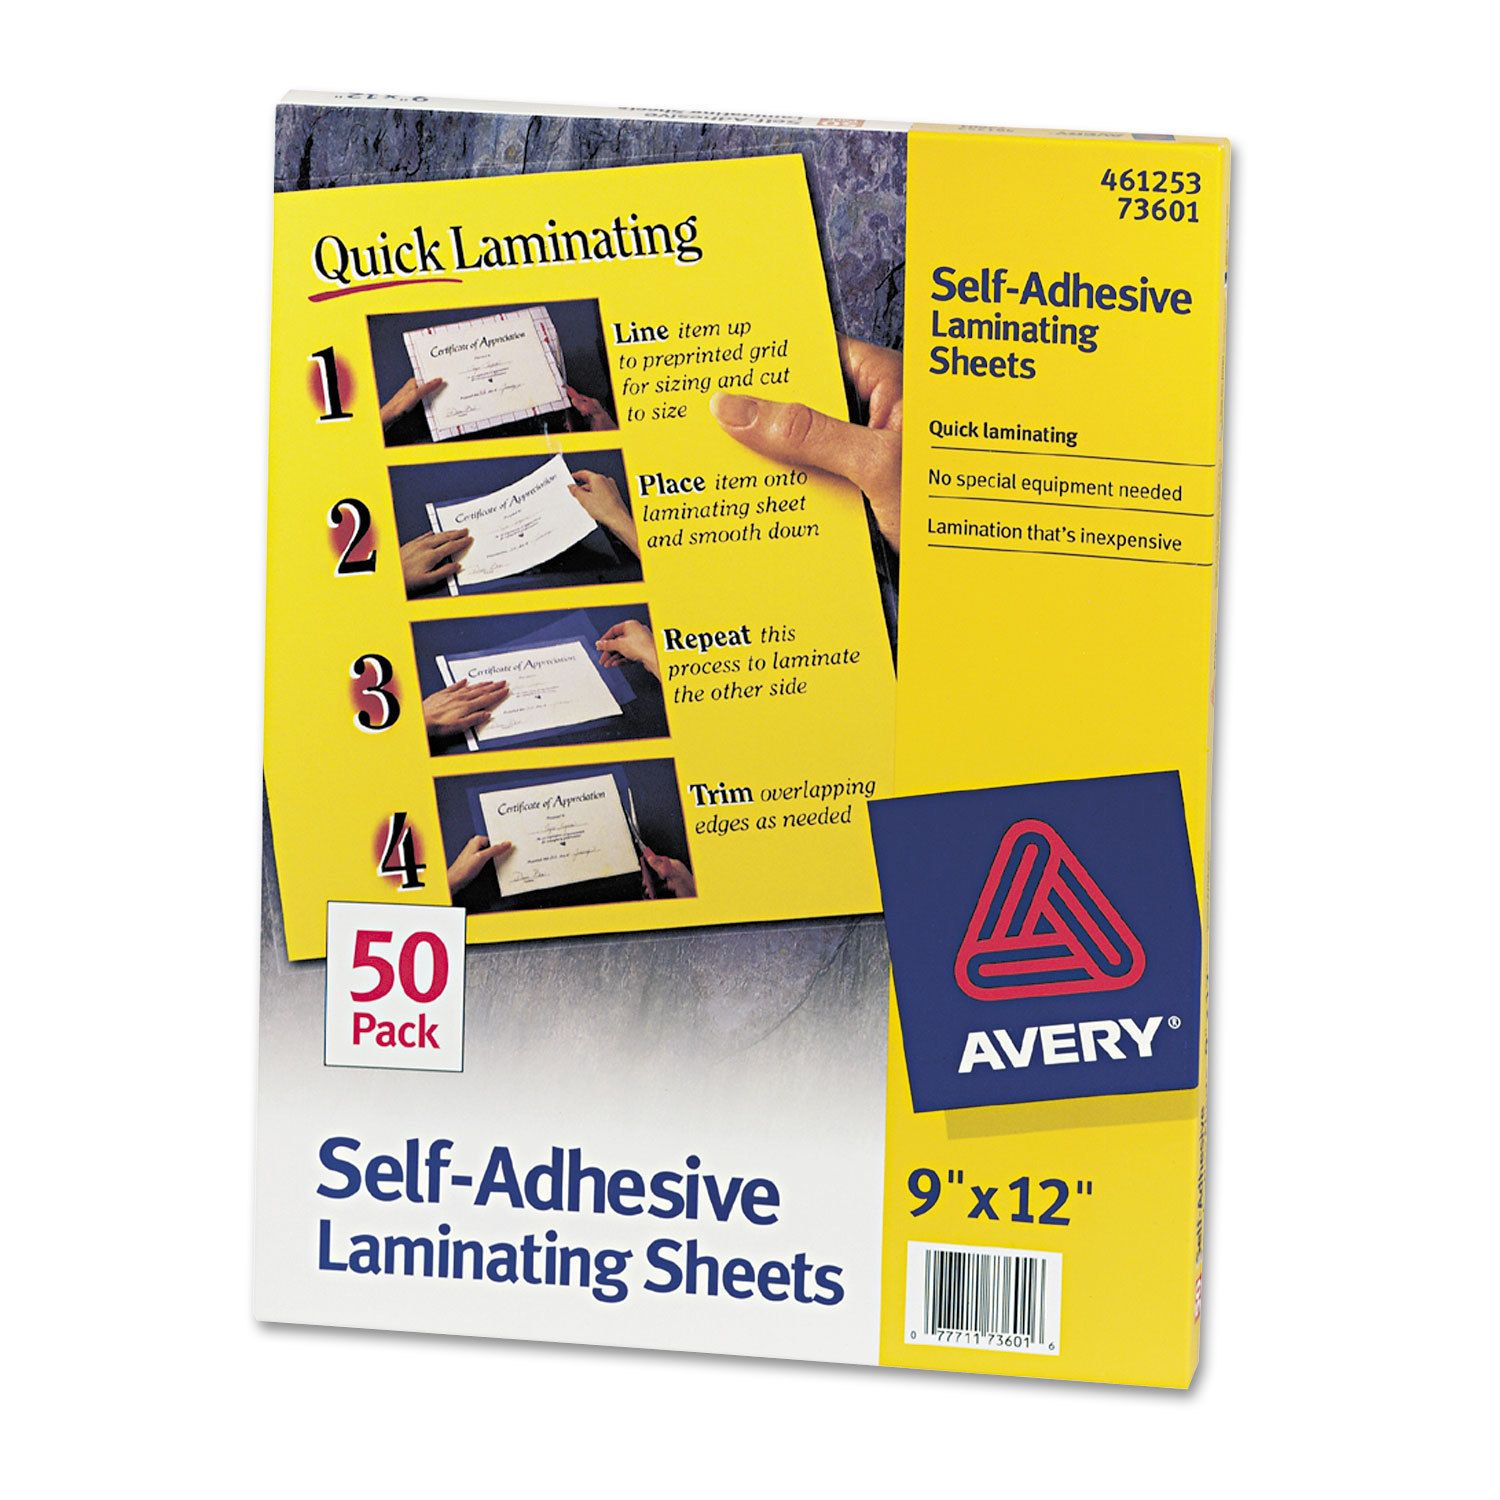 Avery Clear Self Adhesive Laminating Sheets 3 Mil 9 X 12 50 Box Best Laminate Adhesive Craft Supplies Online